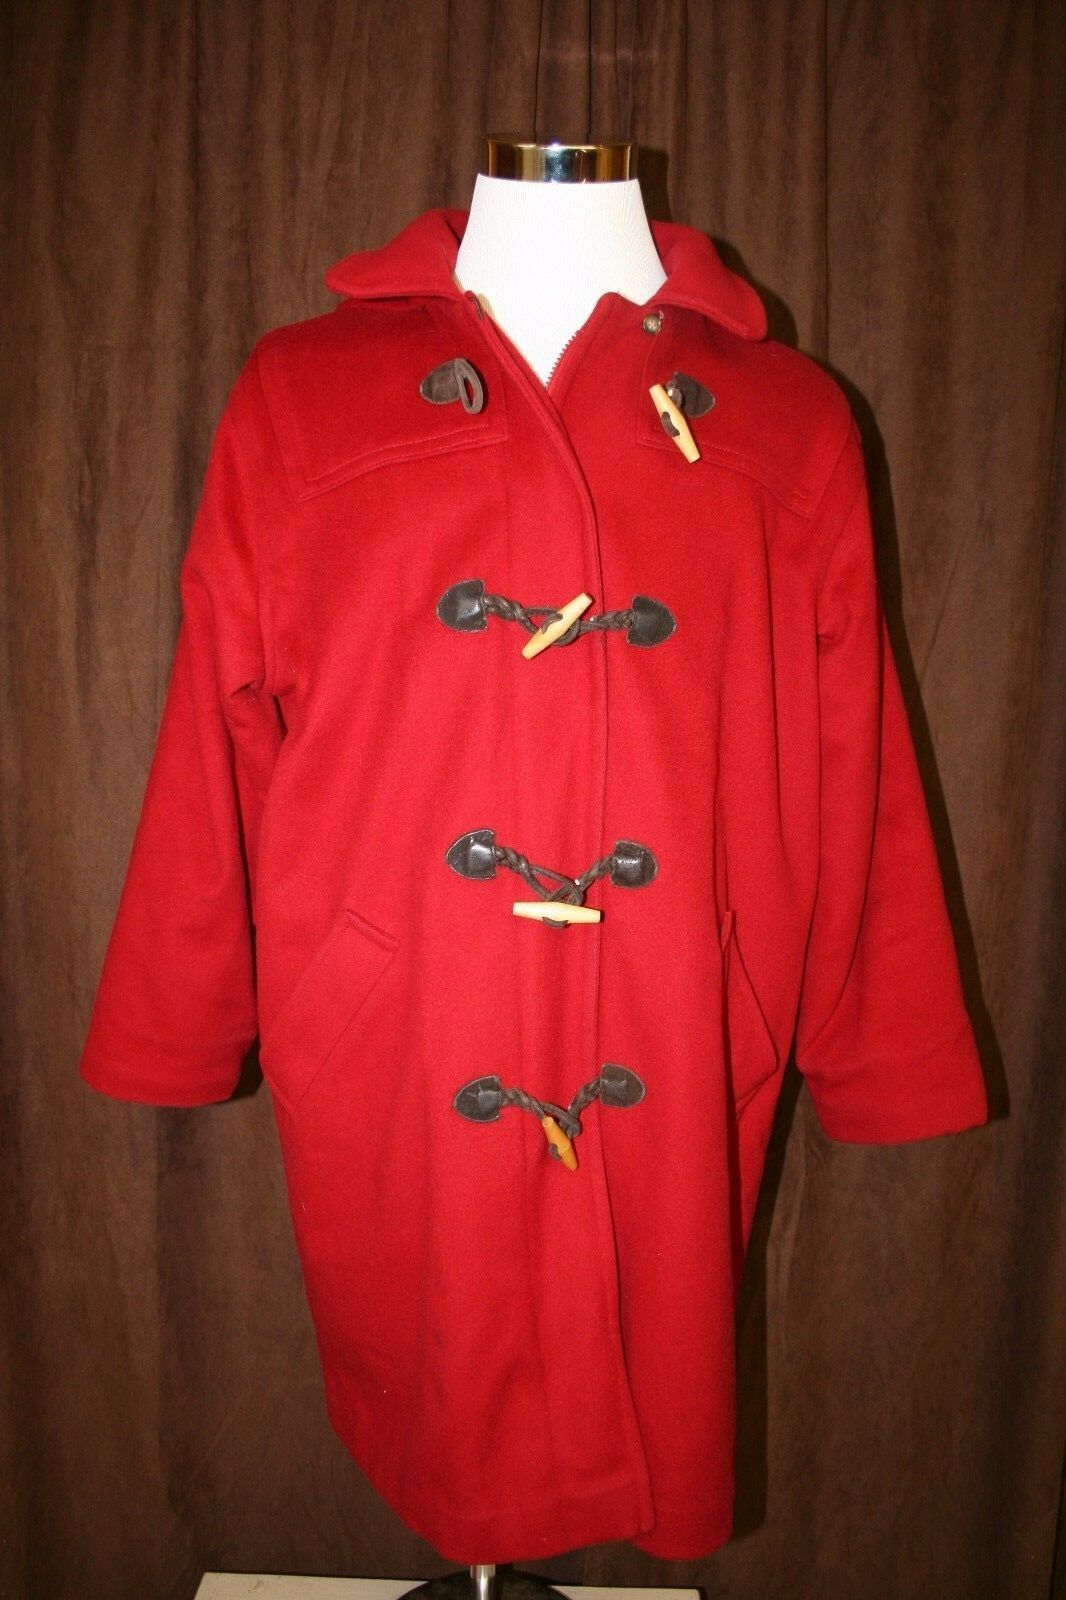 Vintage L L Bean Red Wool Toggle Dufflel Coat Heavy Winter Warm Lined Size 14